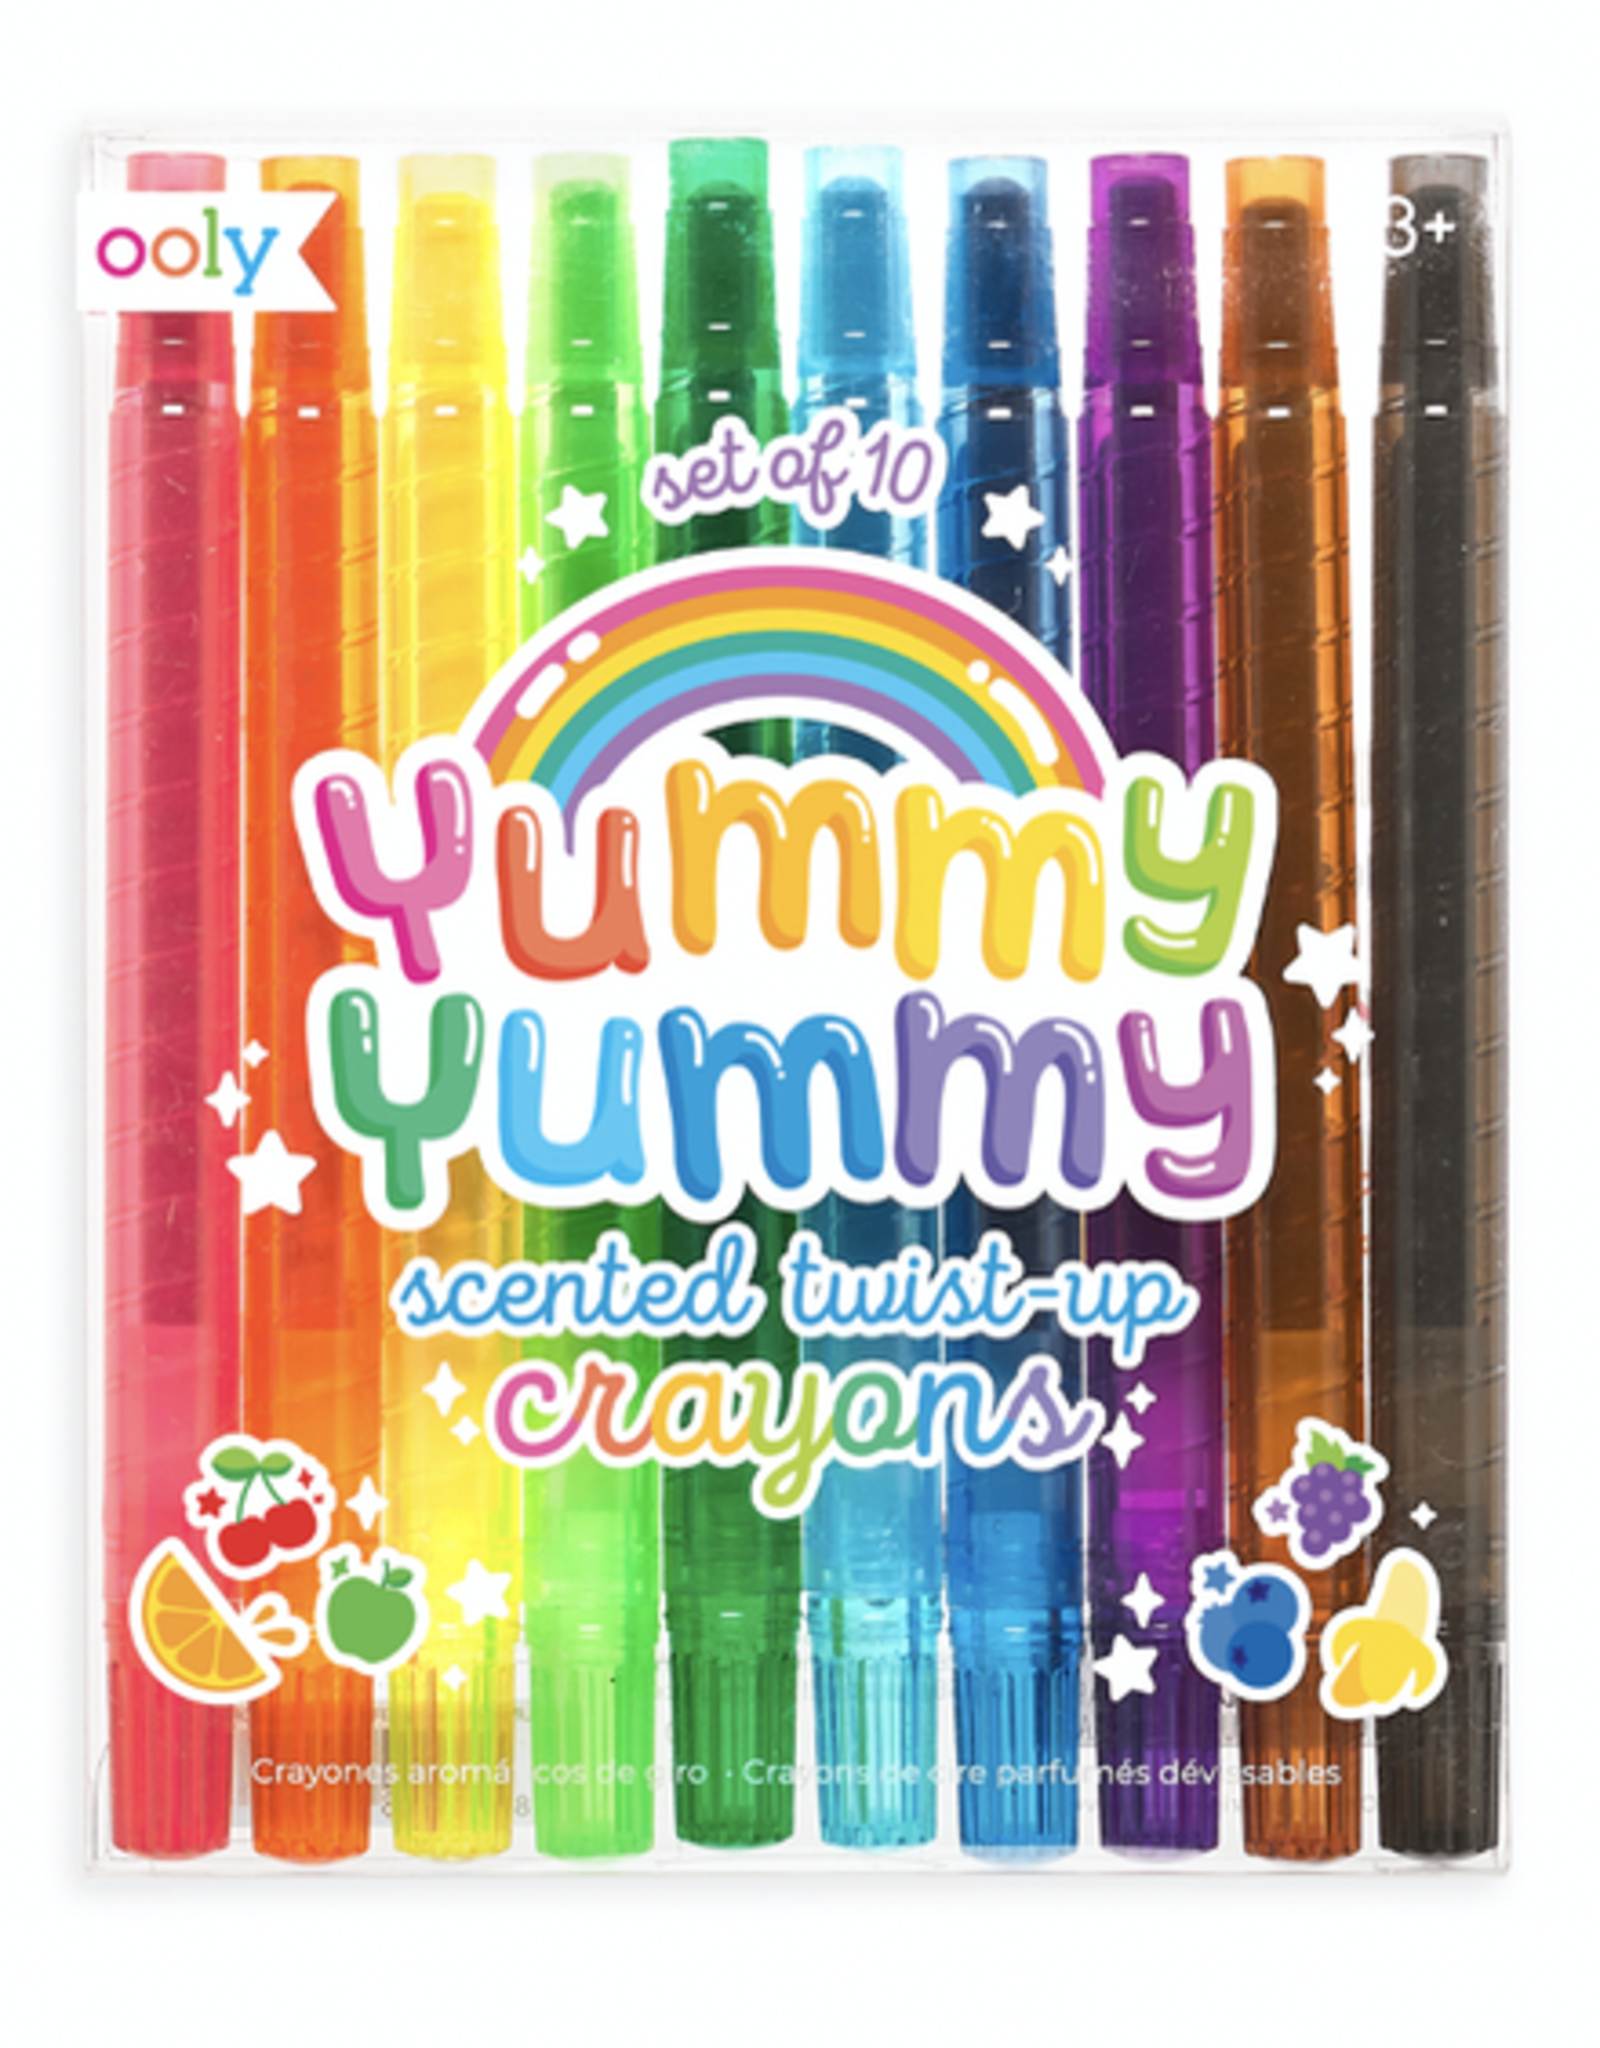 Ooly Yummy Yummy Scented Twist Up Crayons